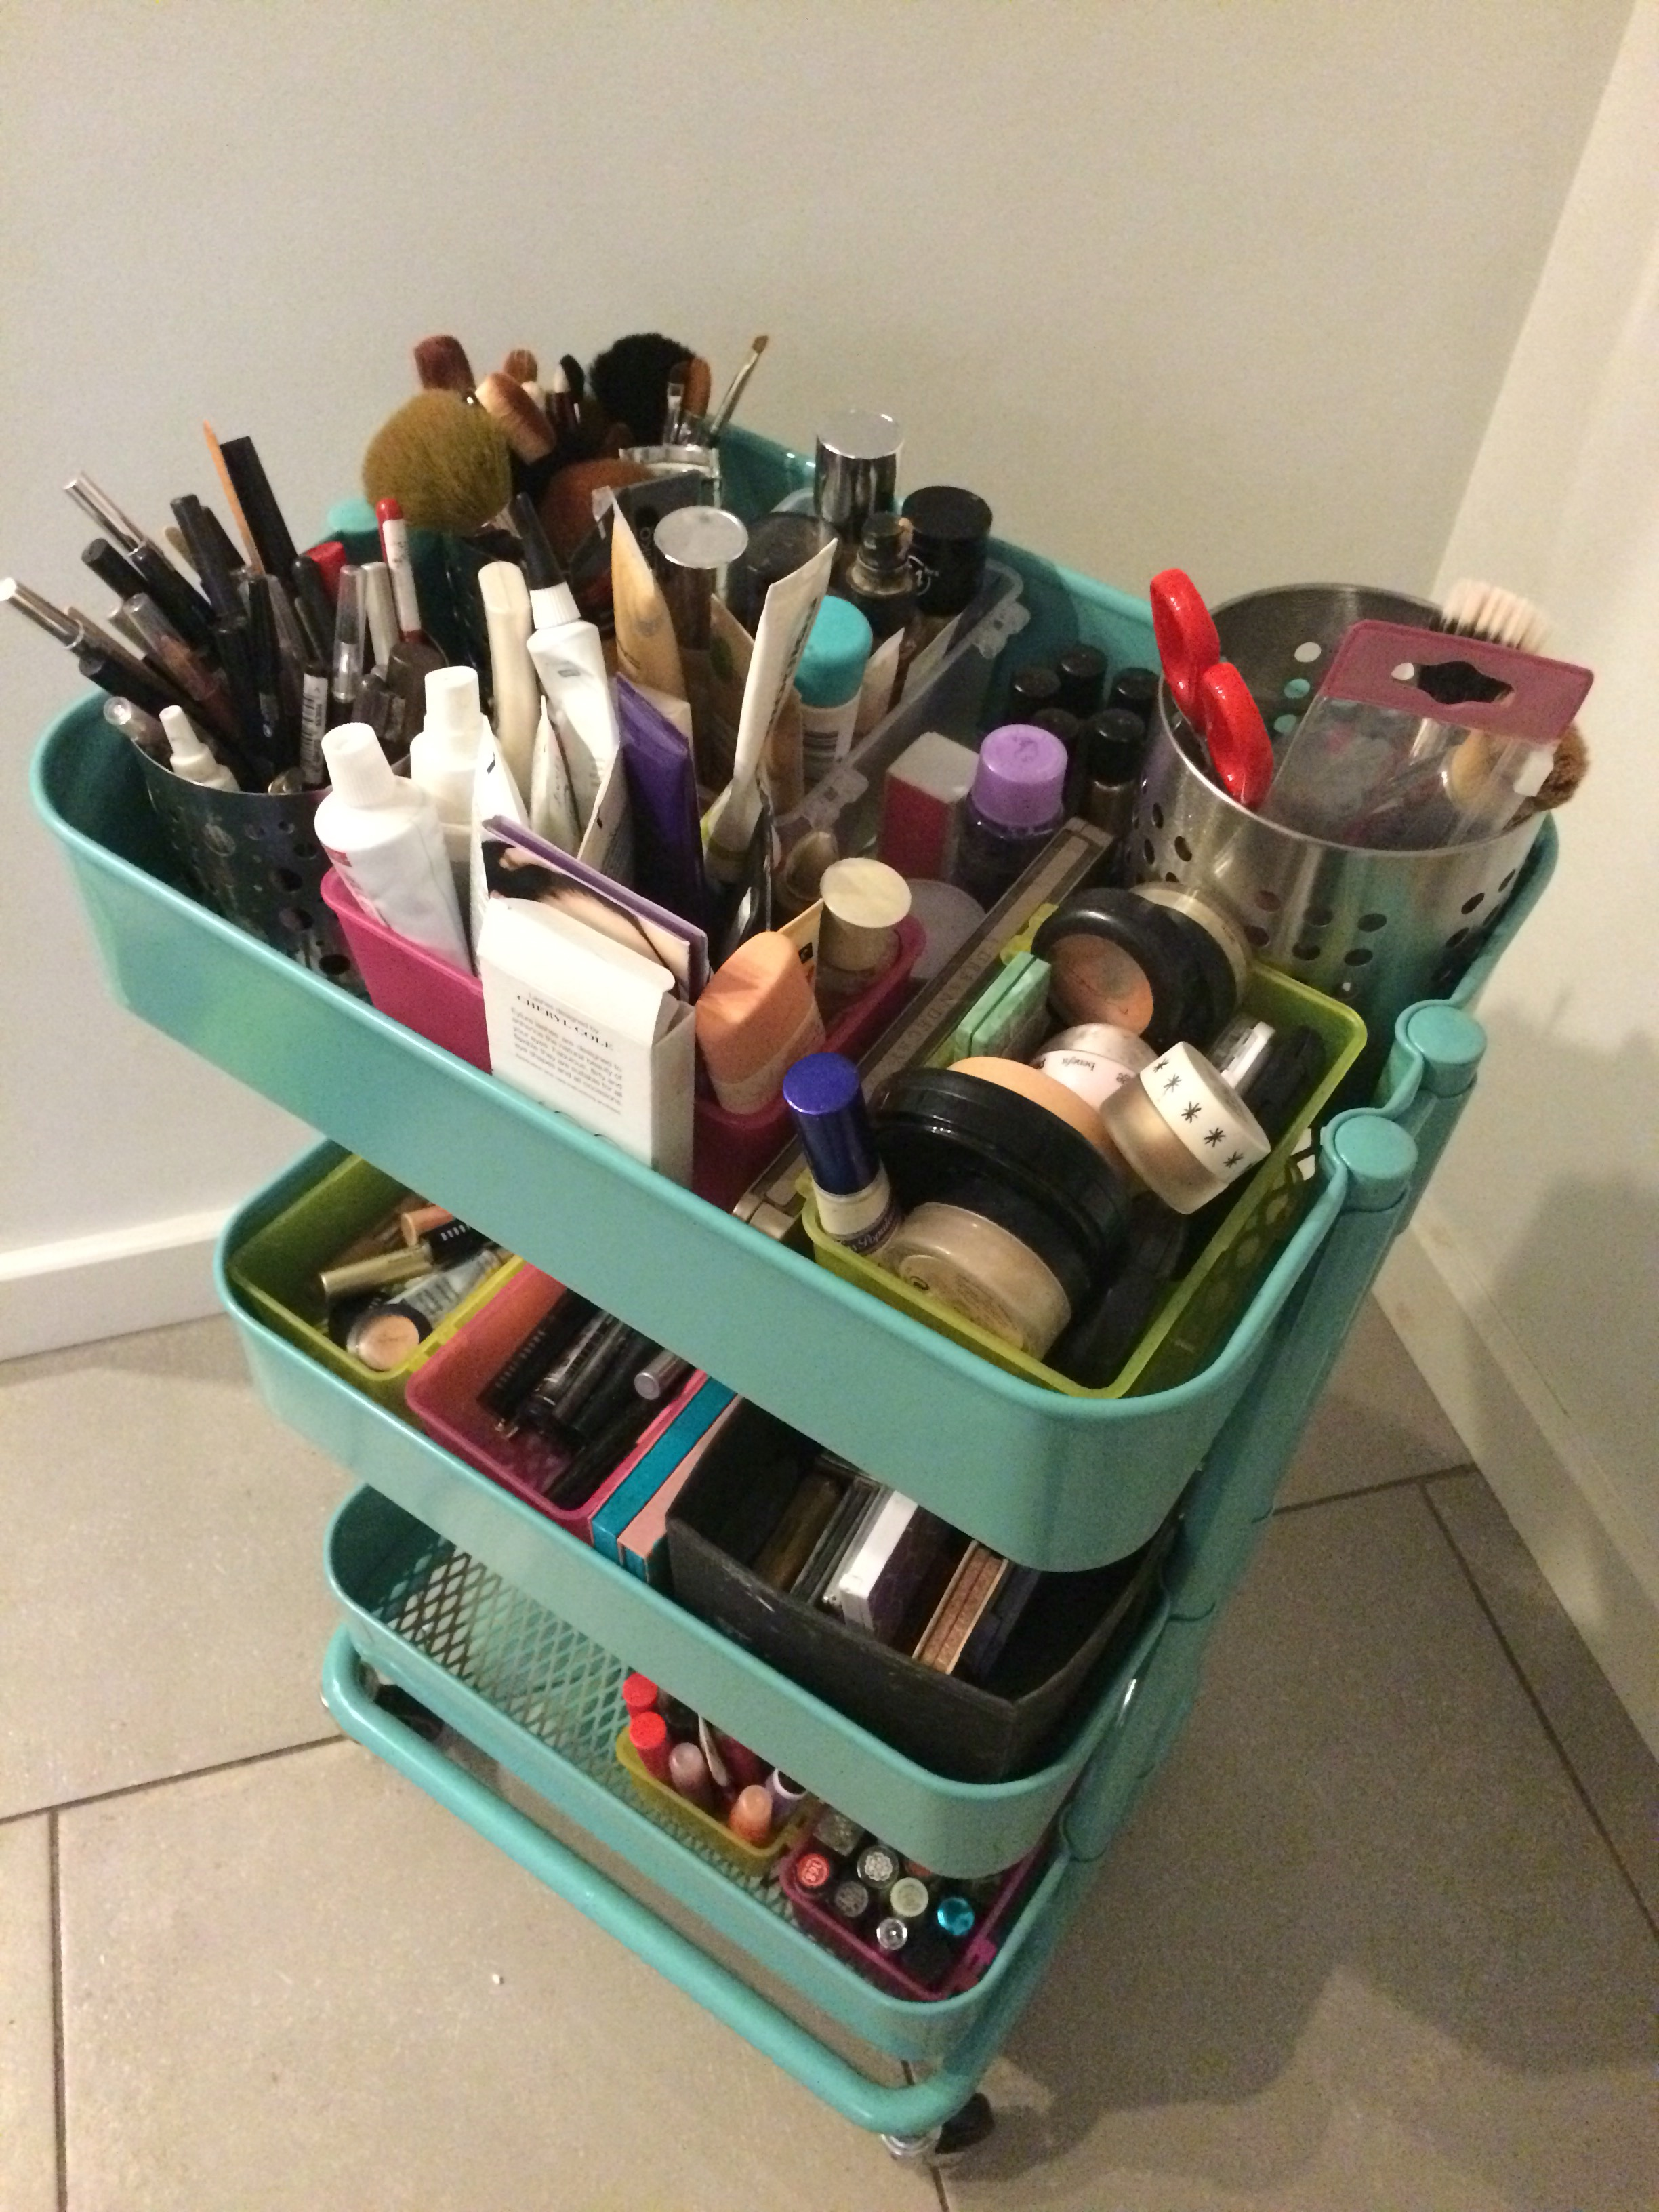 ikea-makeup-organisation-hack